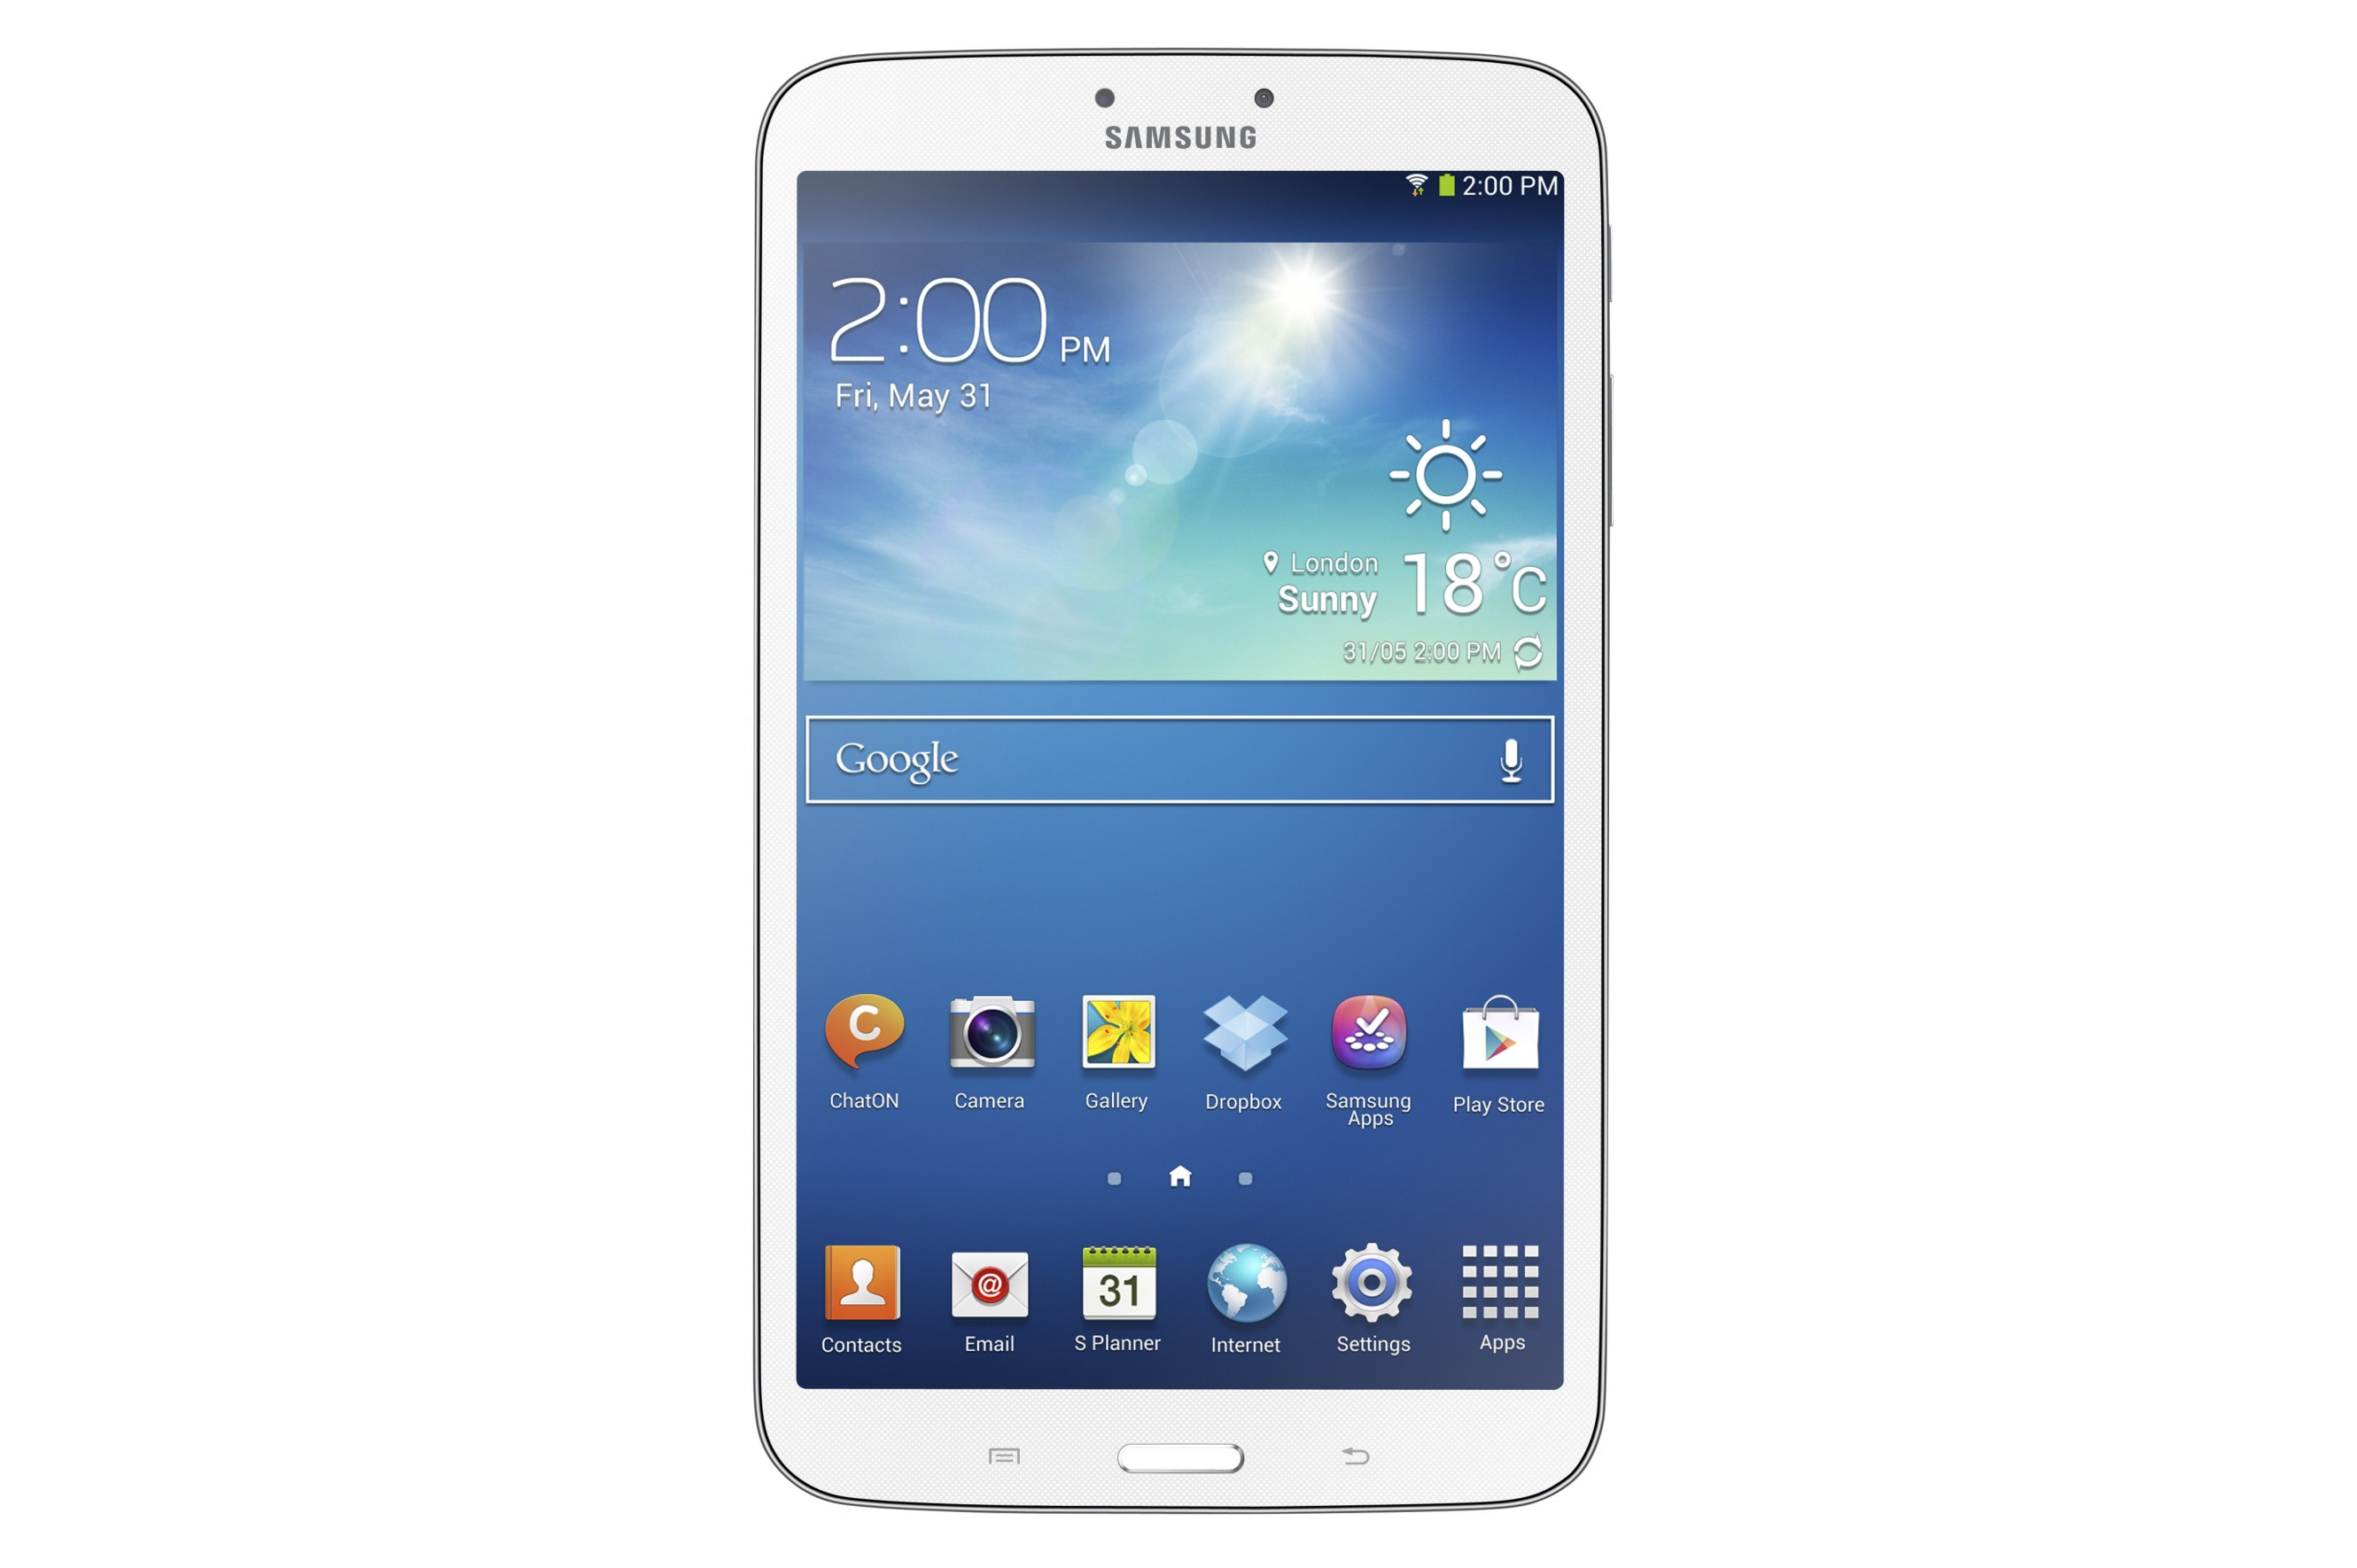 Samsung Announces The Galaxy Tab 3 In 8-Inch And 10.1-Inch ...